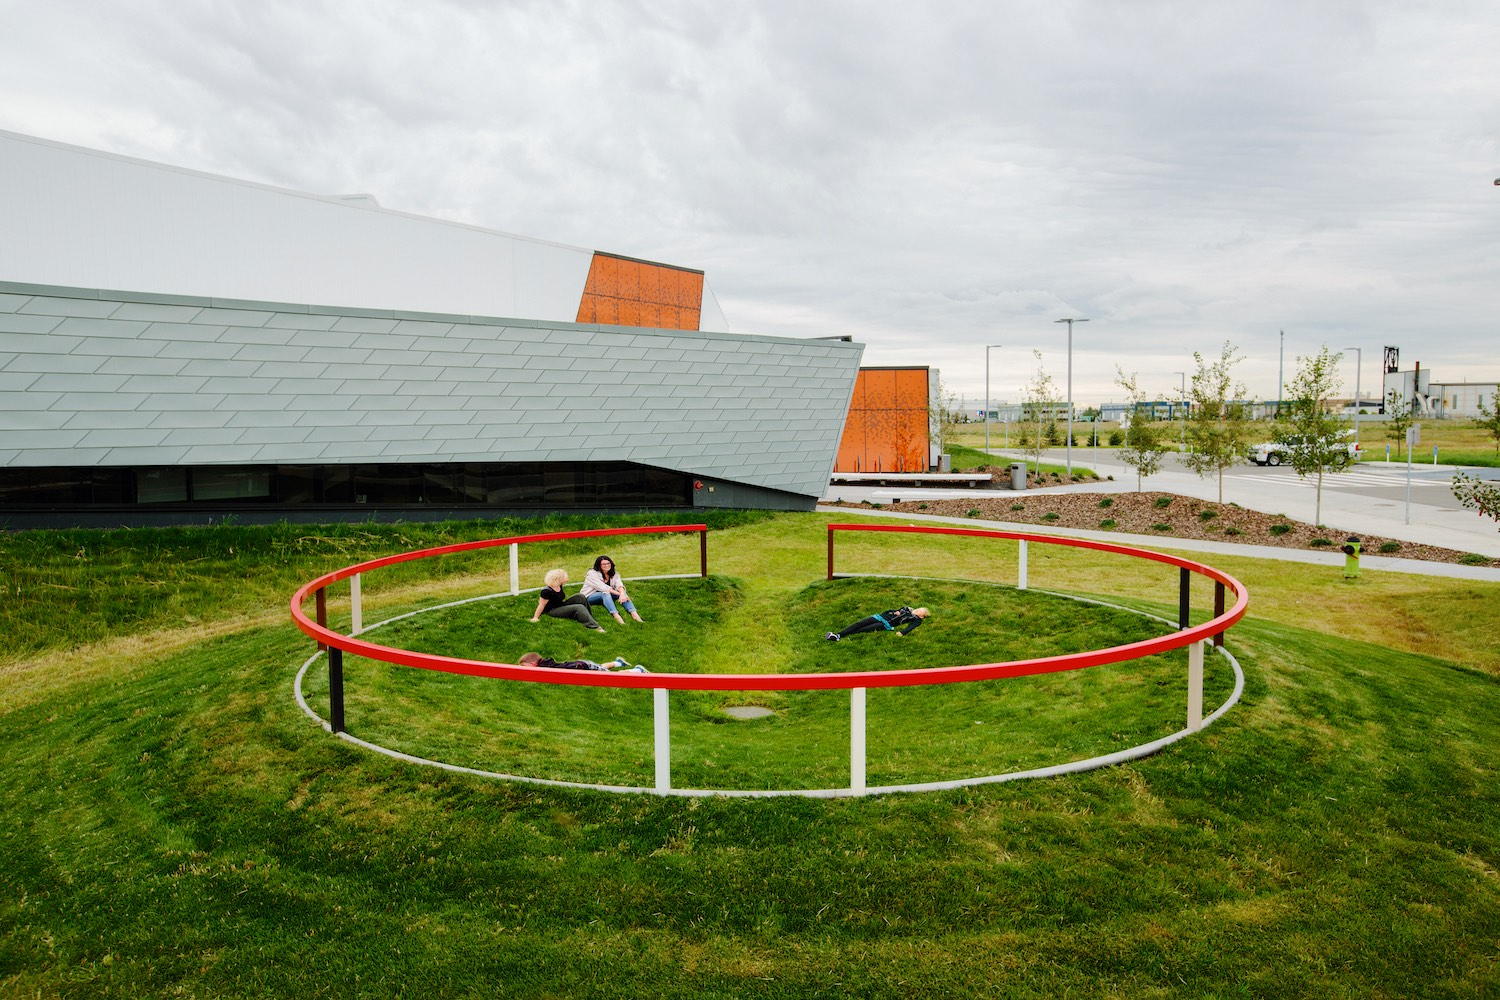 Matthew Geller, public art. LED lights, Calgary, Calgary Public Art, public art, civic art, Great Plains Recreational Center, hockey, ice hockey